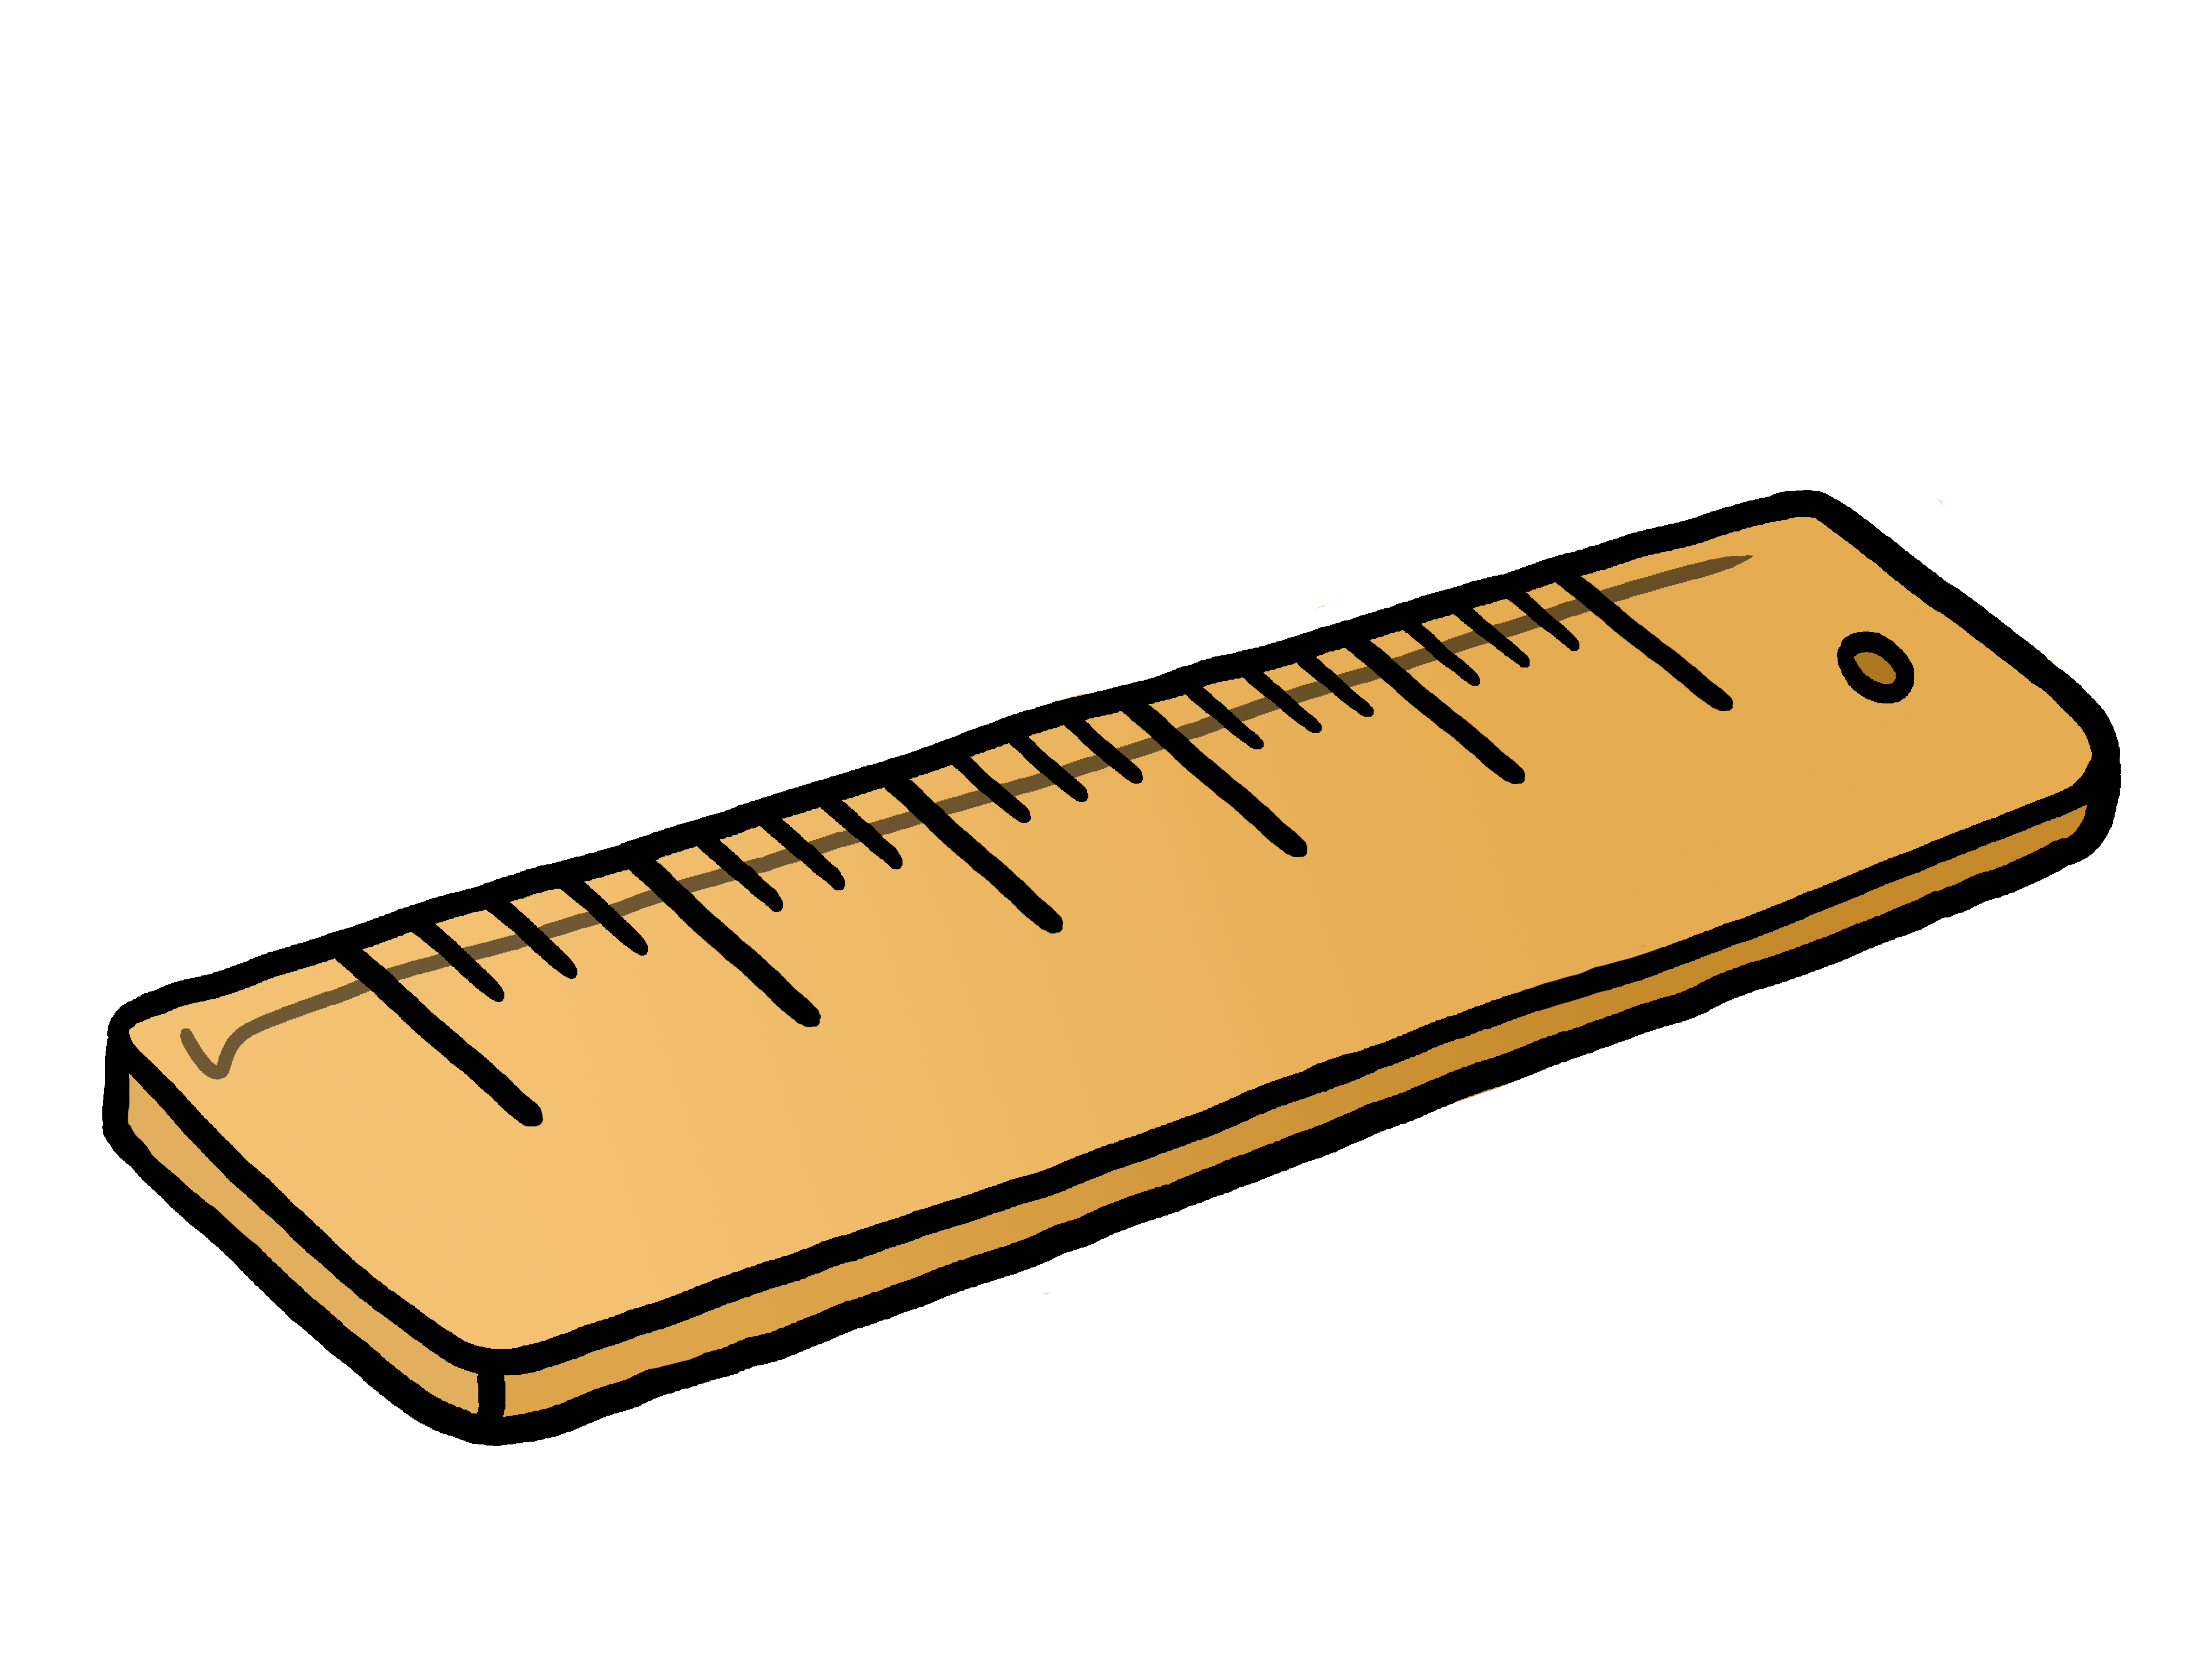 Ruler Clipart Black And White Free Clipart Images